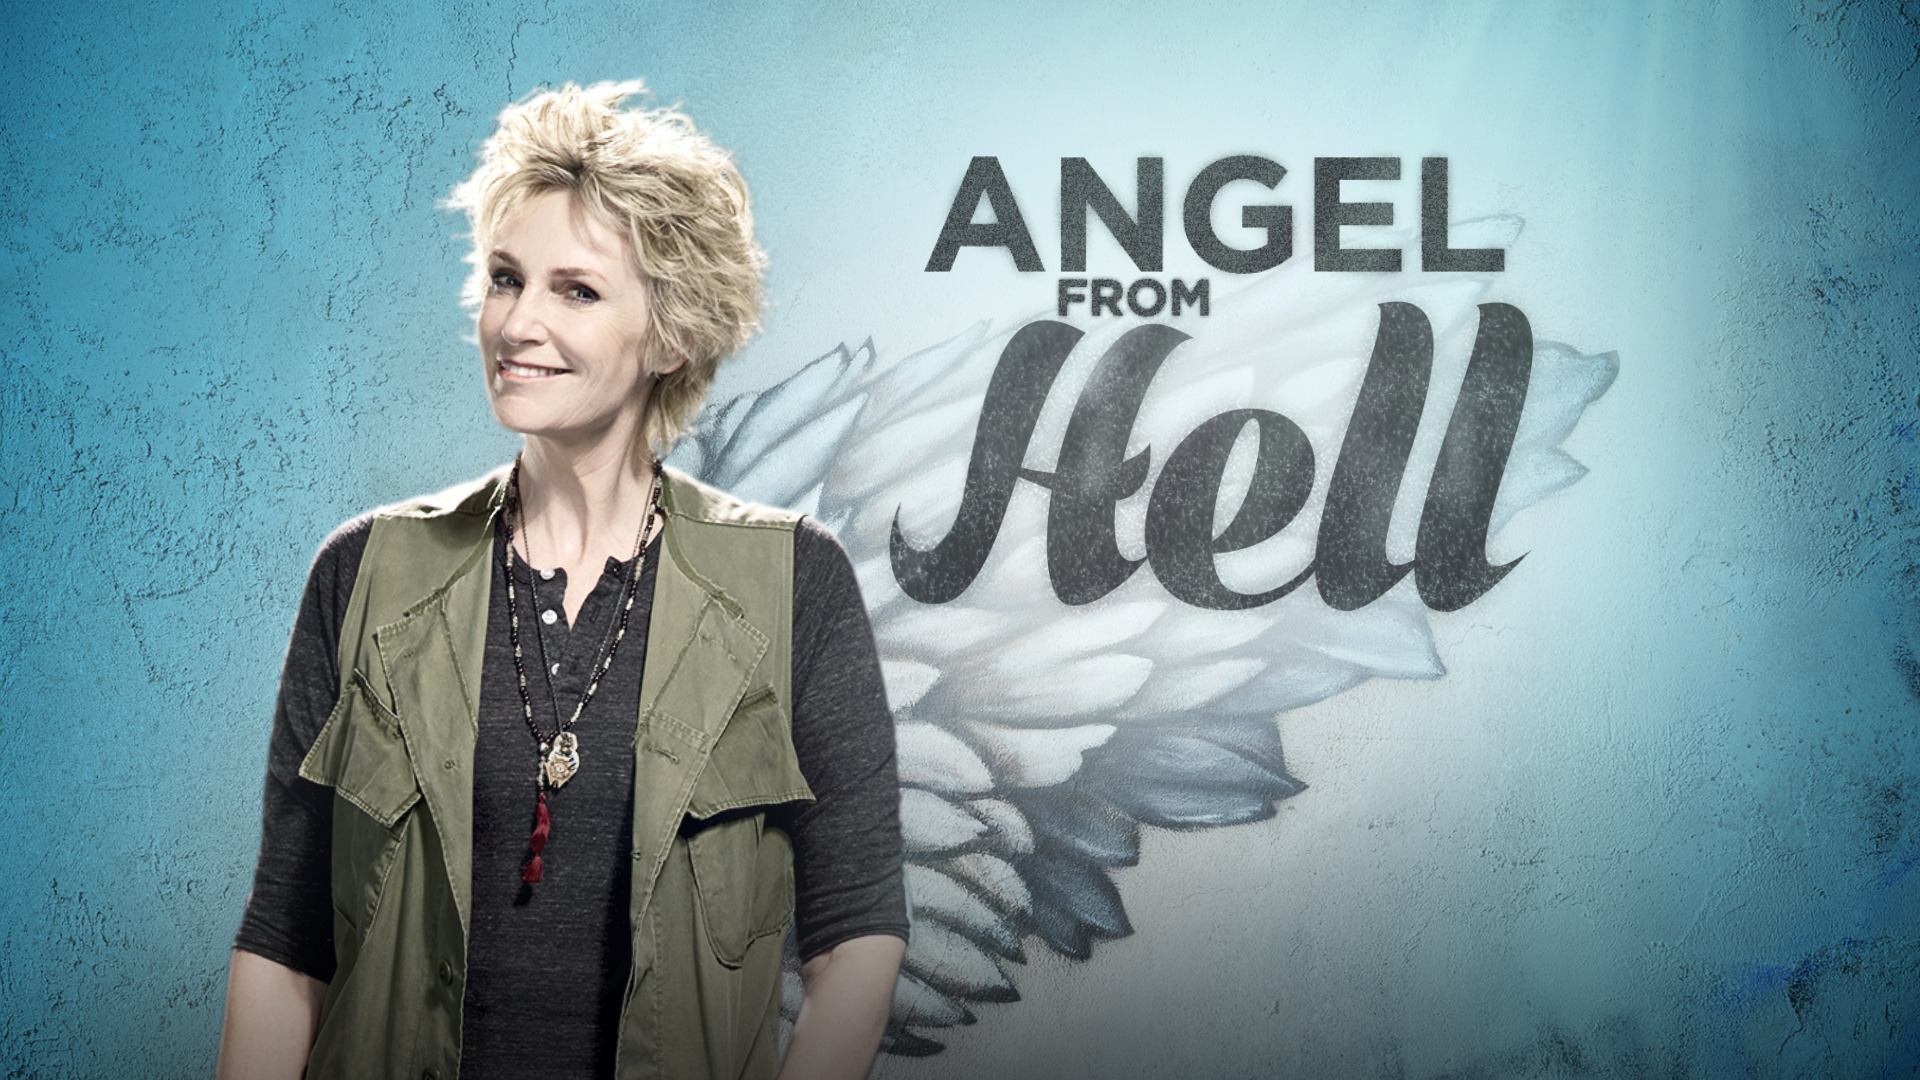 Show Angel from Hell